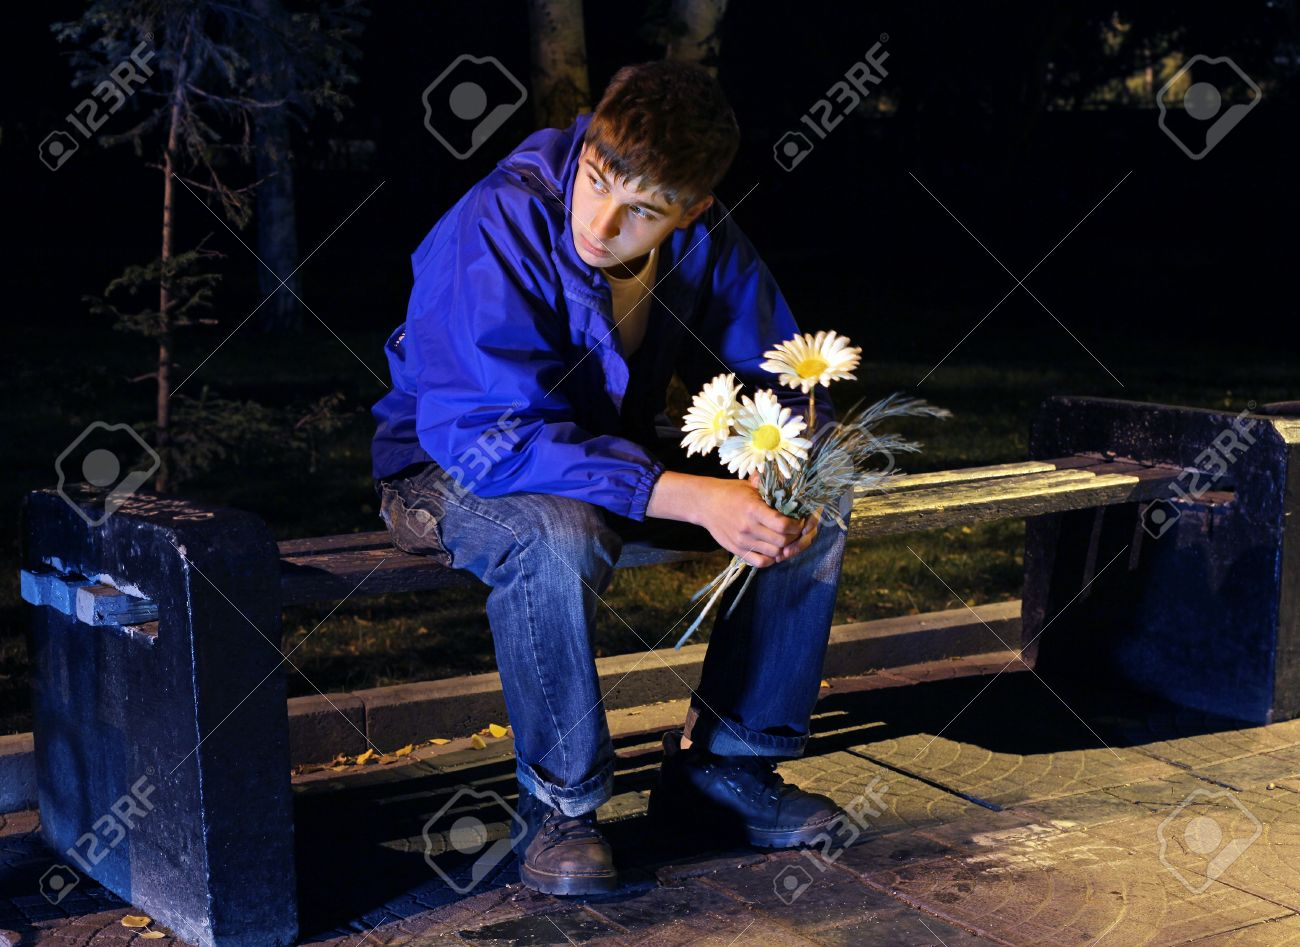 Sad Teenager In The Night Park With Flowers Stock Photo Picture And